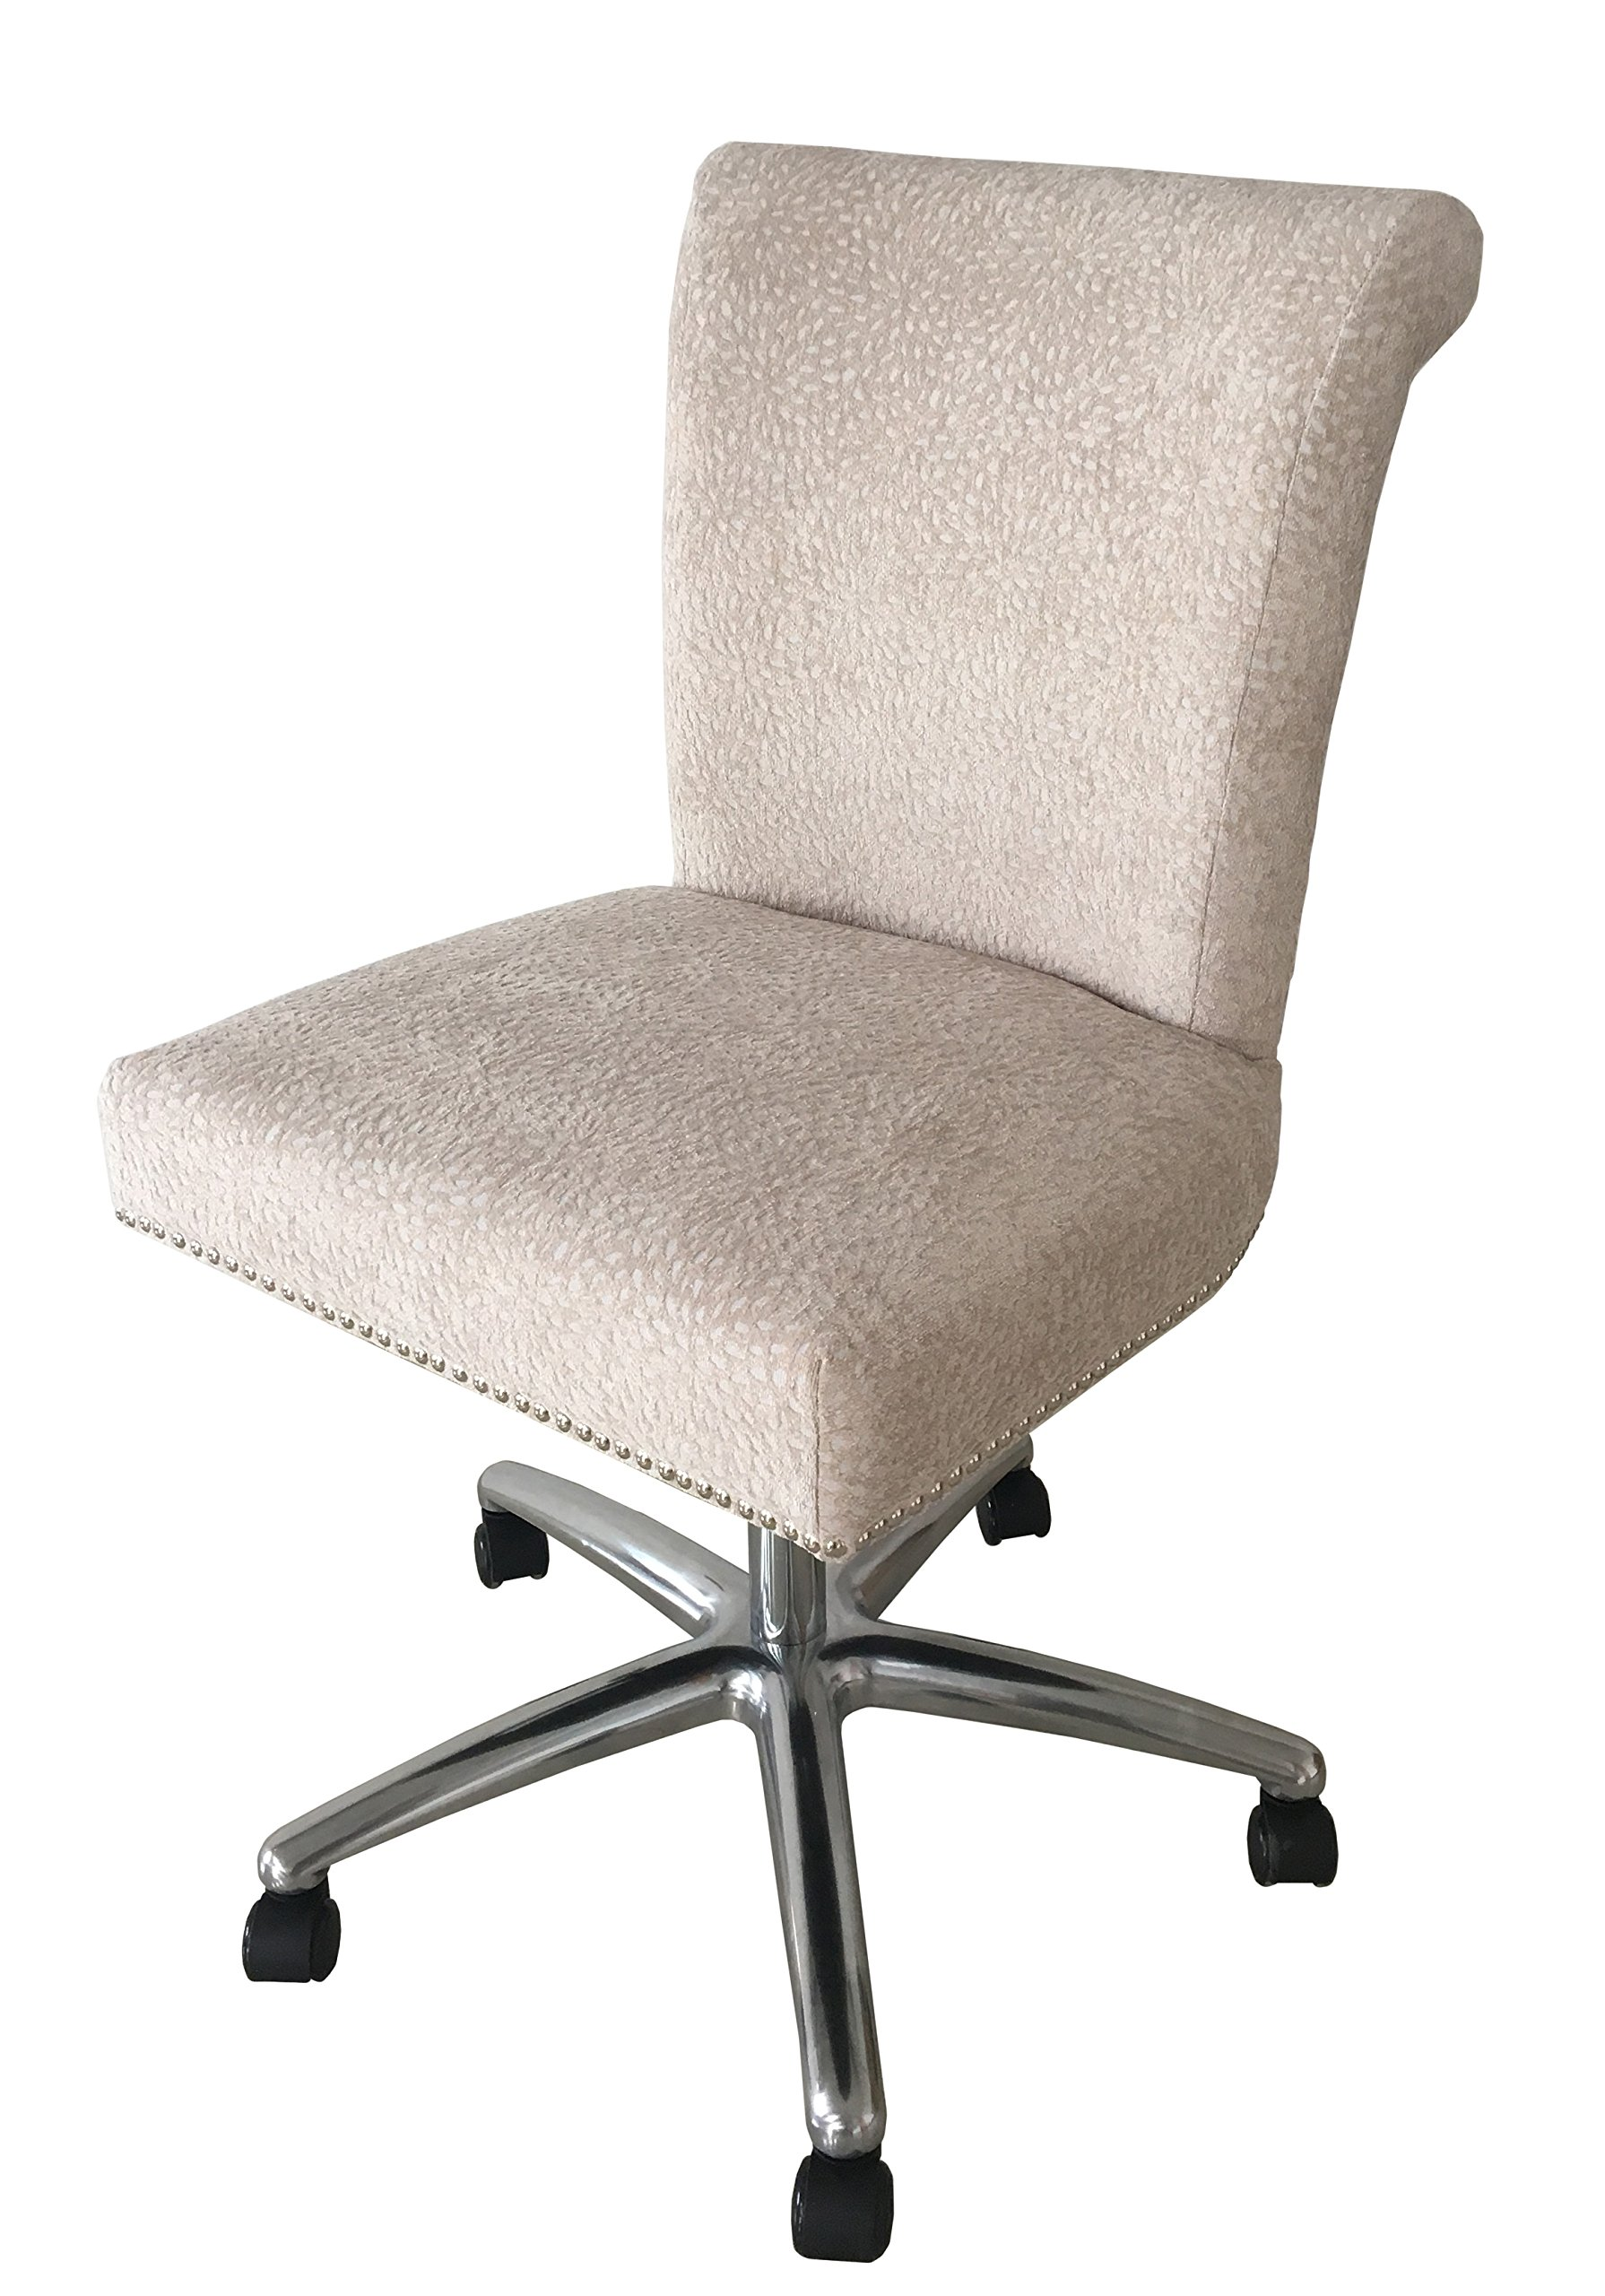 Cheap Cream Office Chair, Find Cream Office Chair Deals On